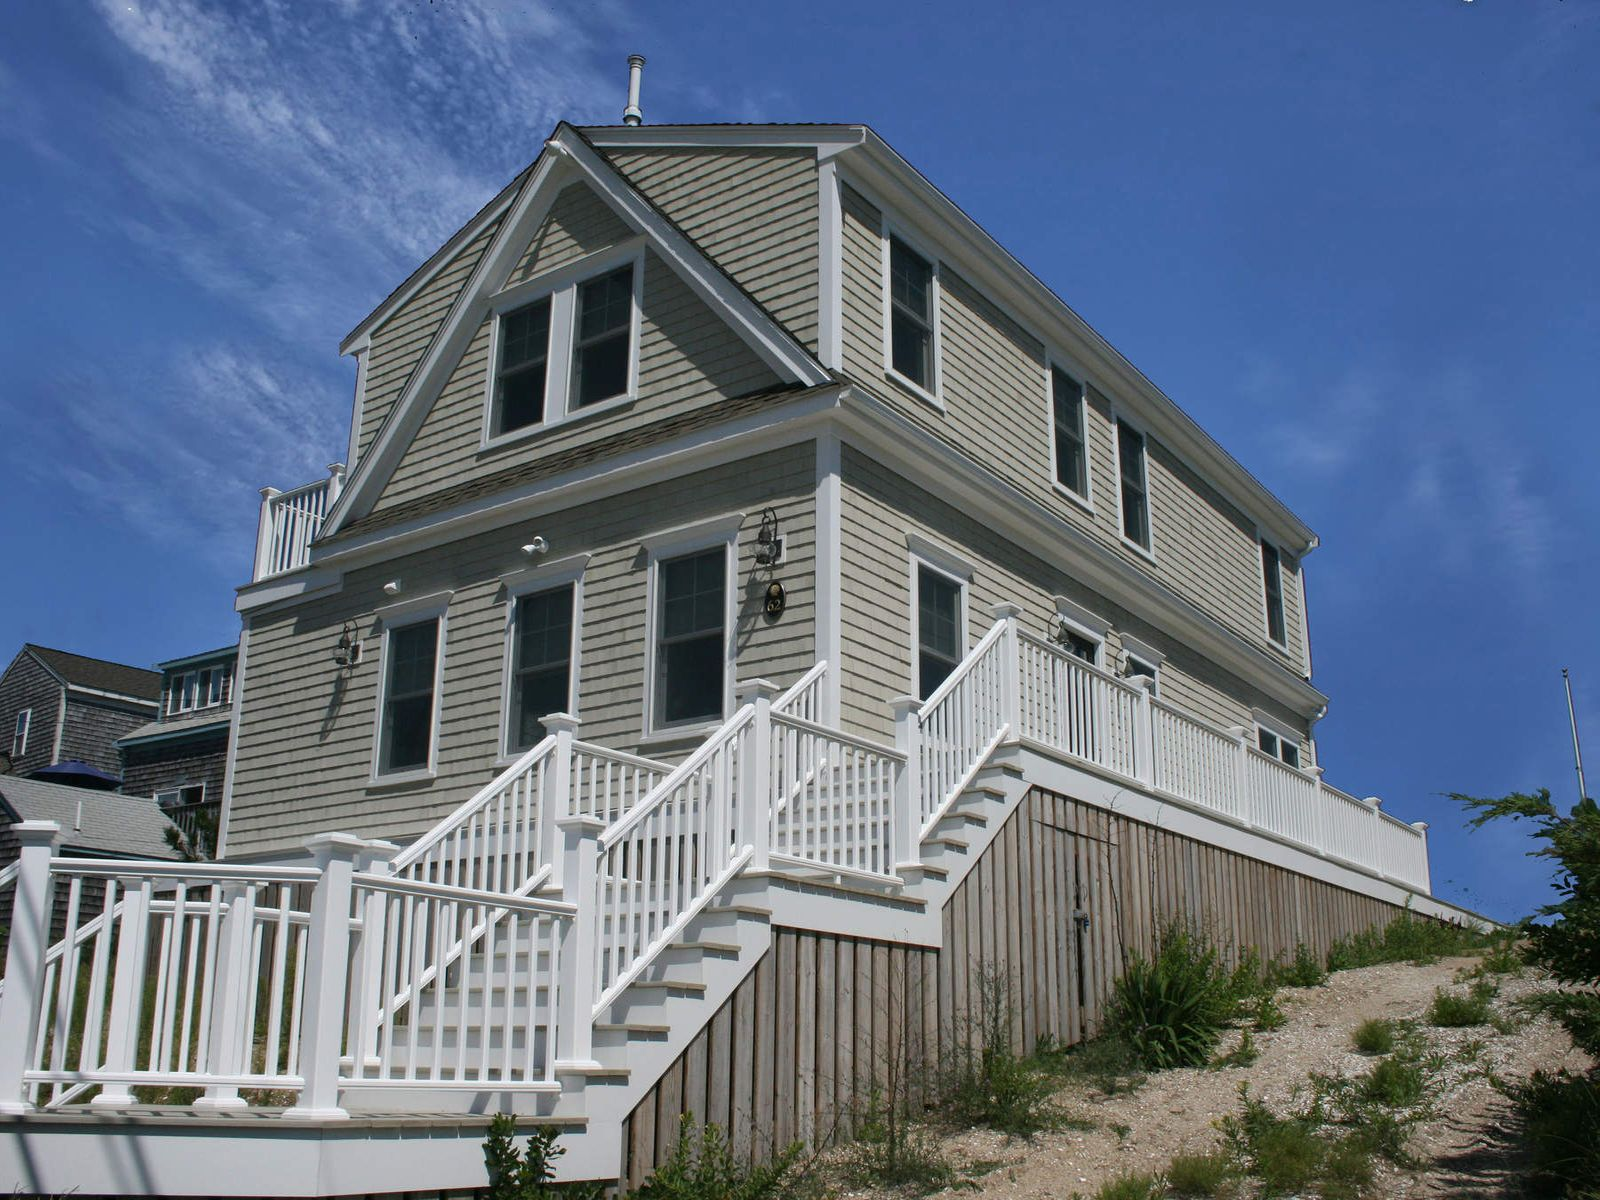 Beachfront on Private Spring Hill, East Sandwich MA Single Family Home - Cape Cod Real Estate